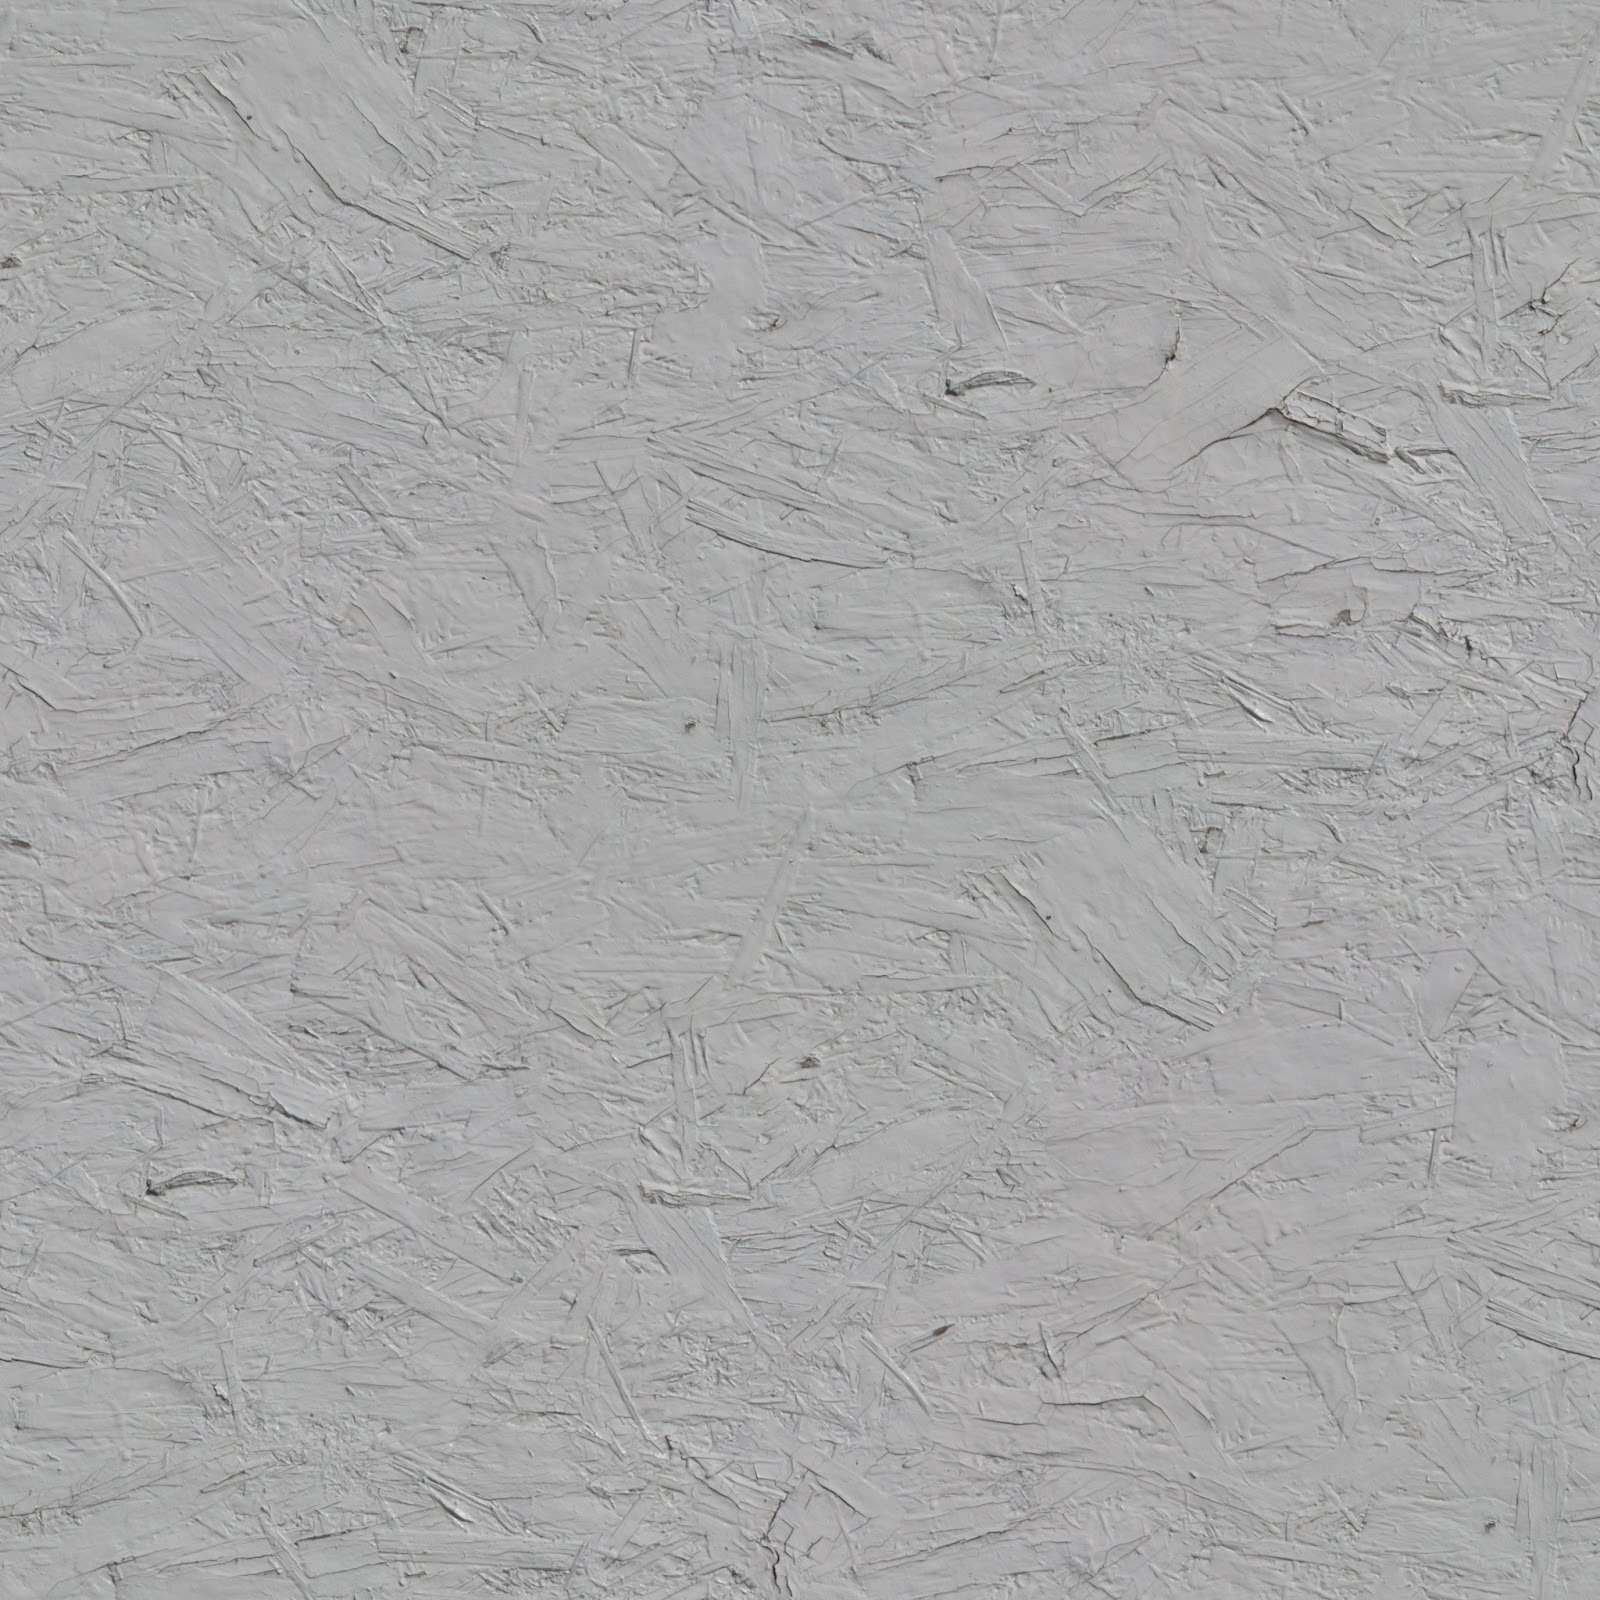 High Resolution Seamless Textures: #Plywood #Painted # ...